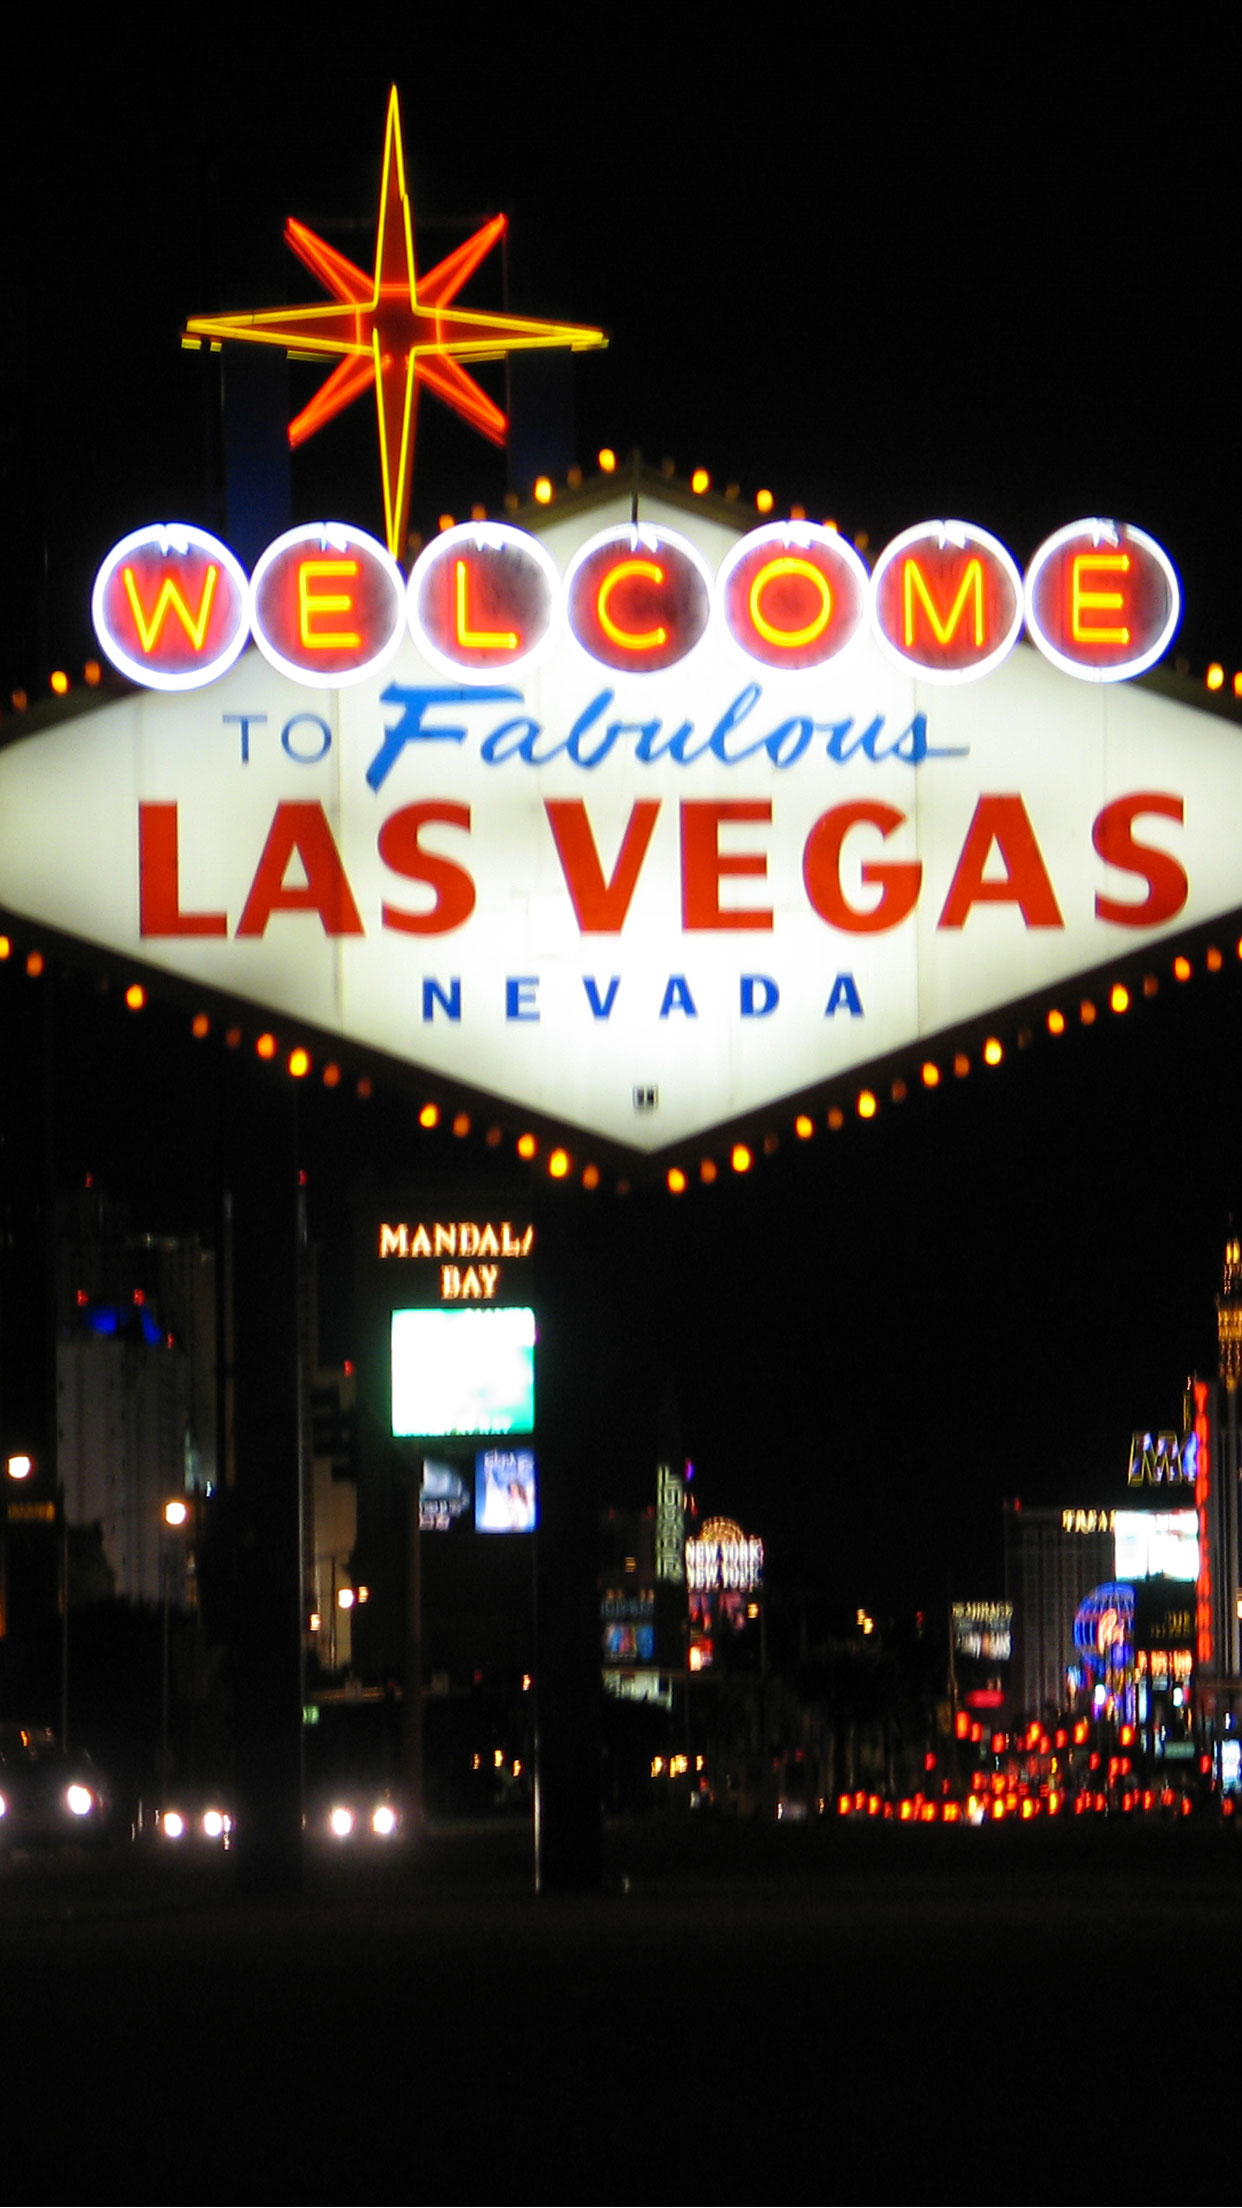 Las Vegas Welcome Wallpaper For Iphone 11 Pro Max X 8 7 6 Free Download On 3wallpapers